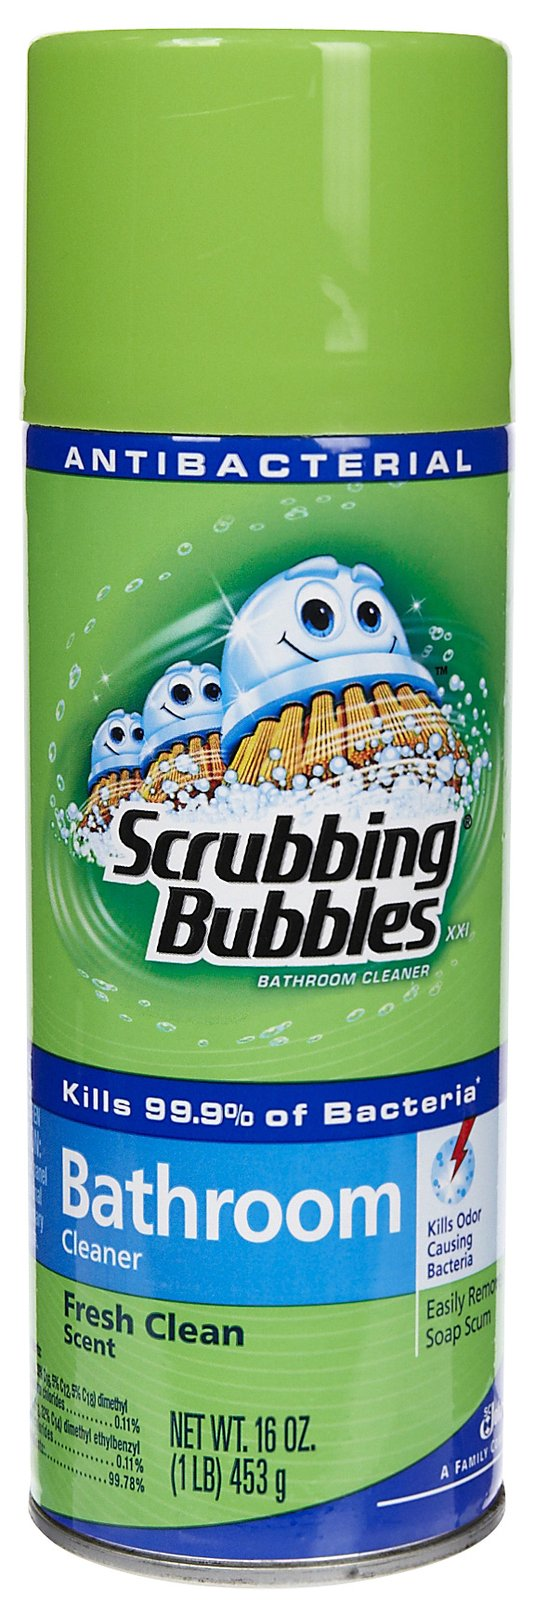 CVS: Scrubbing Bubbles Bathroom Cleaners As Low As $1.50